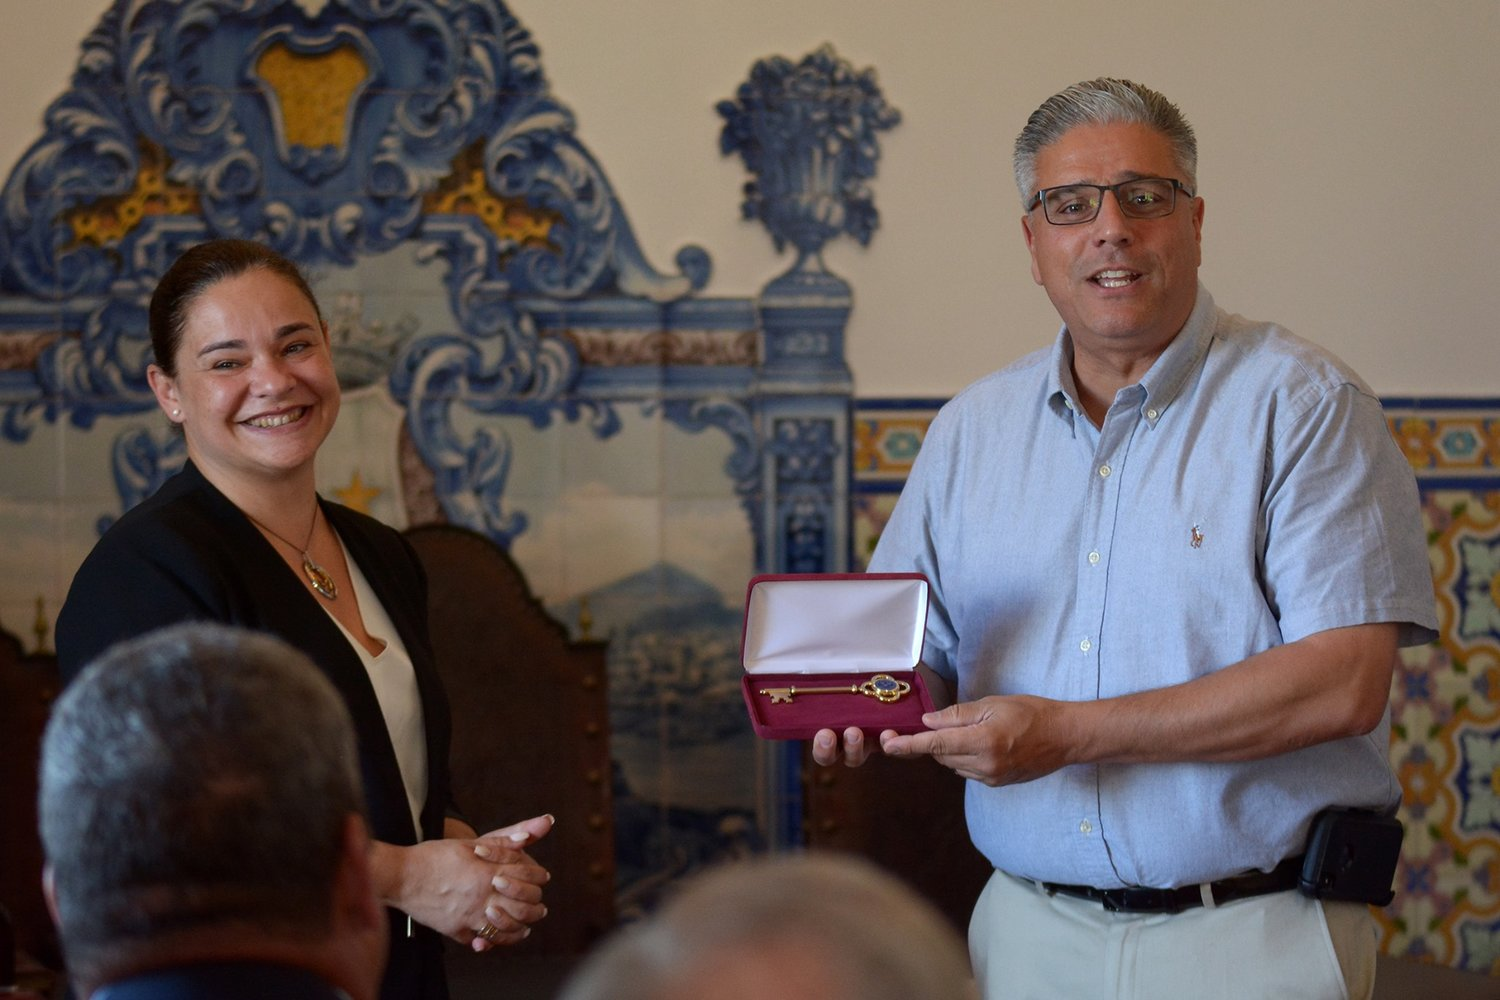 Mayor Bob DaSilva giving the keys to the city from East Providence to Tania Fonseca, Vice President of Ribeira Grande.